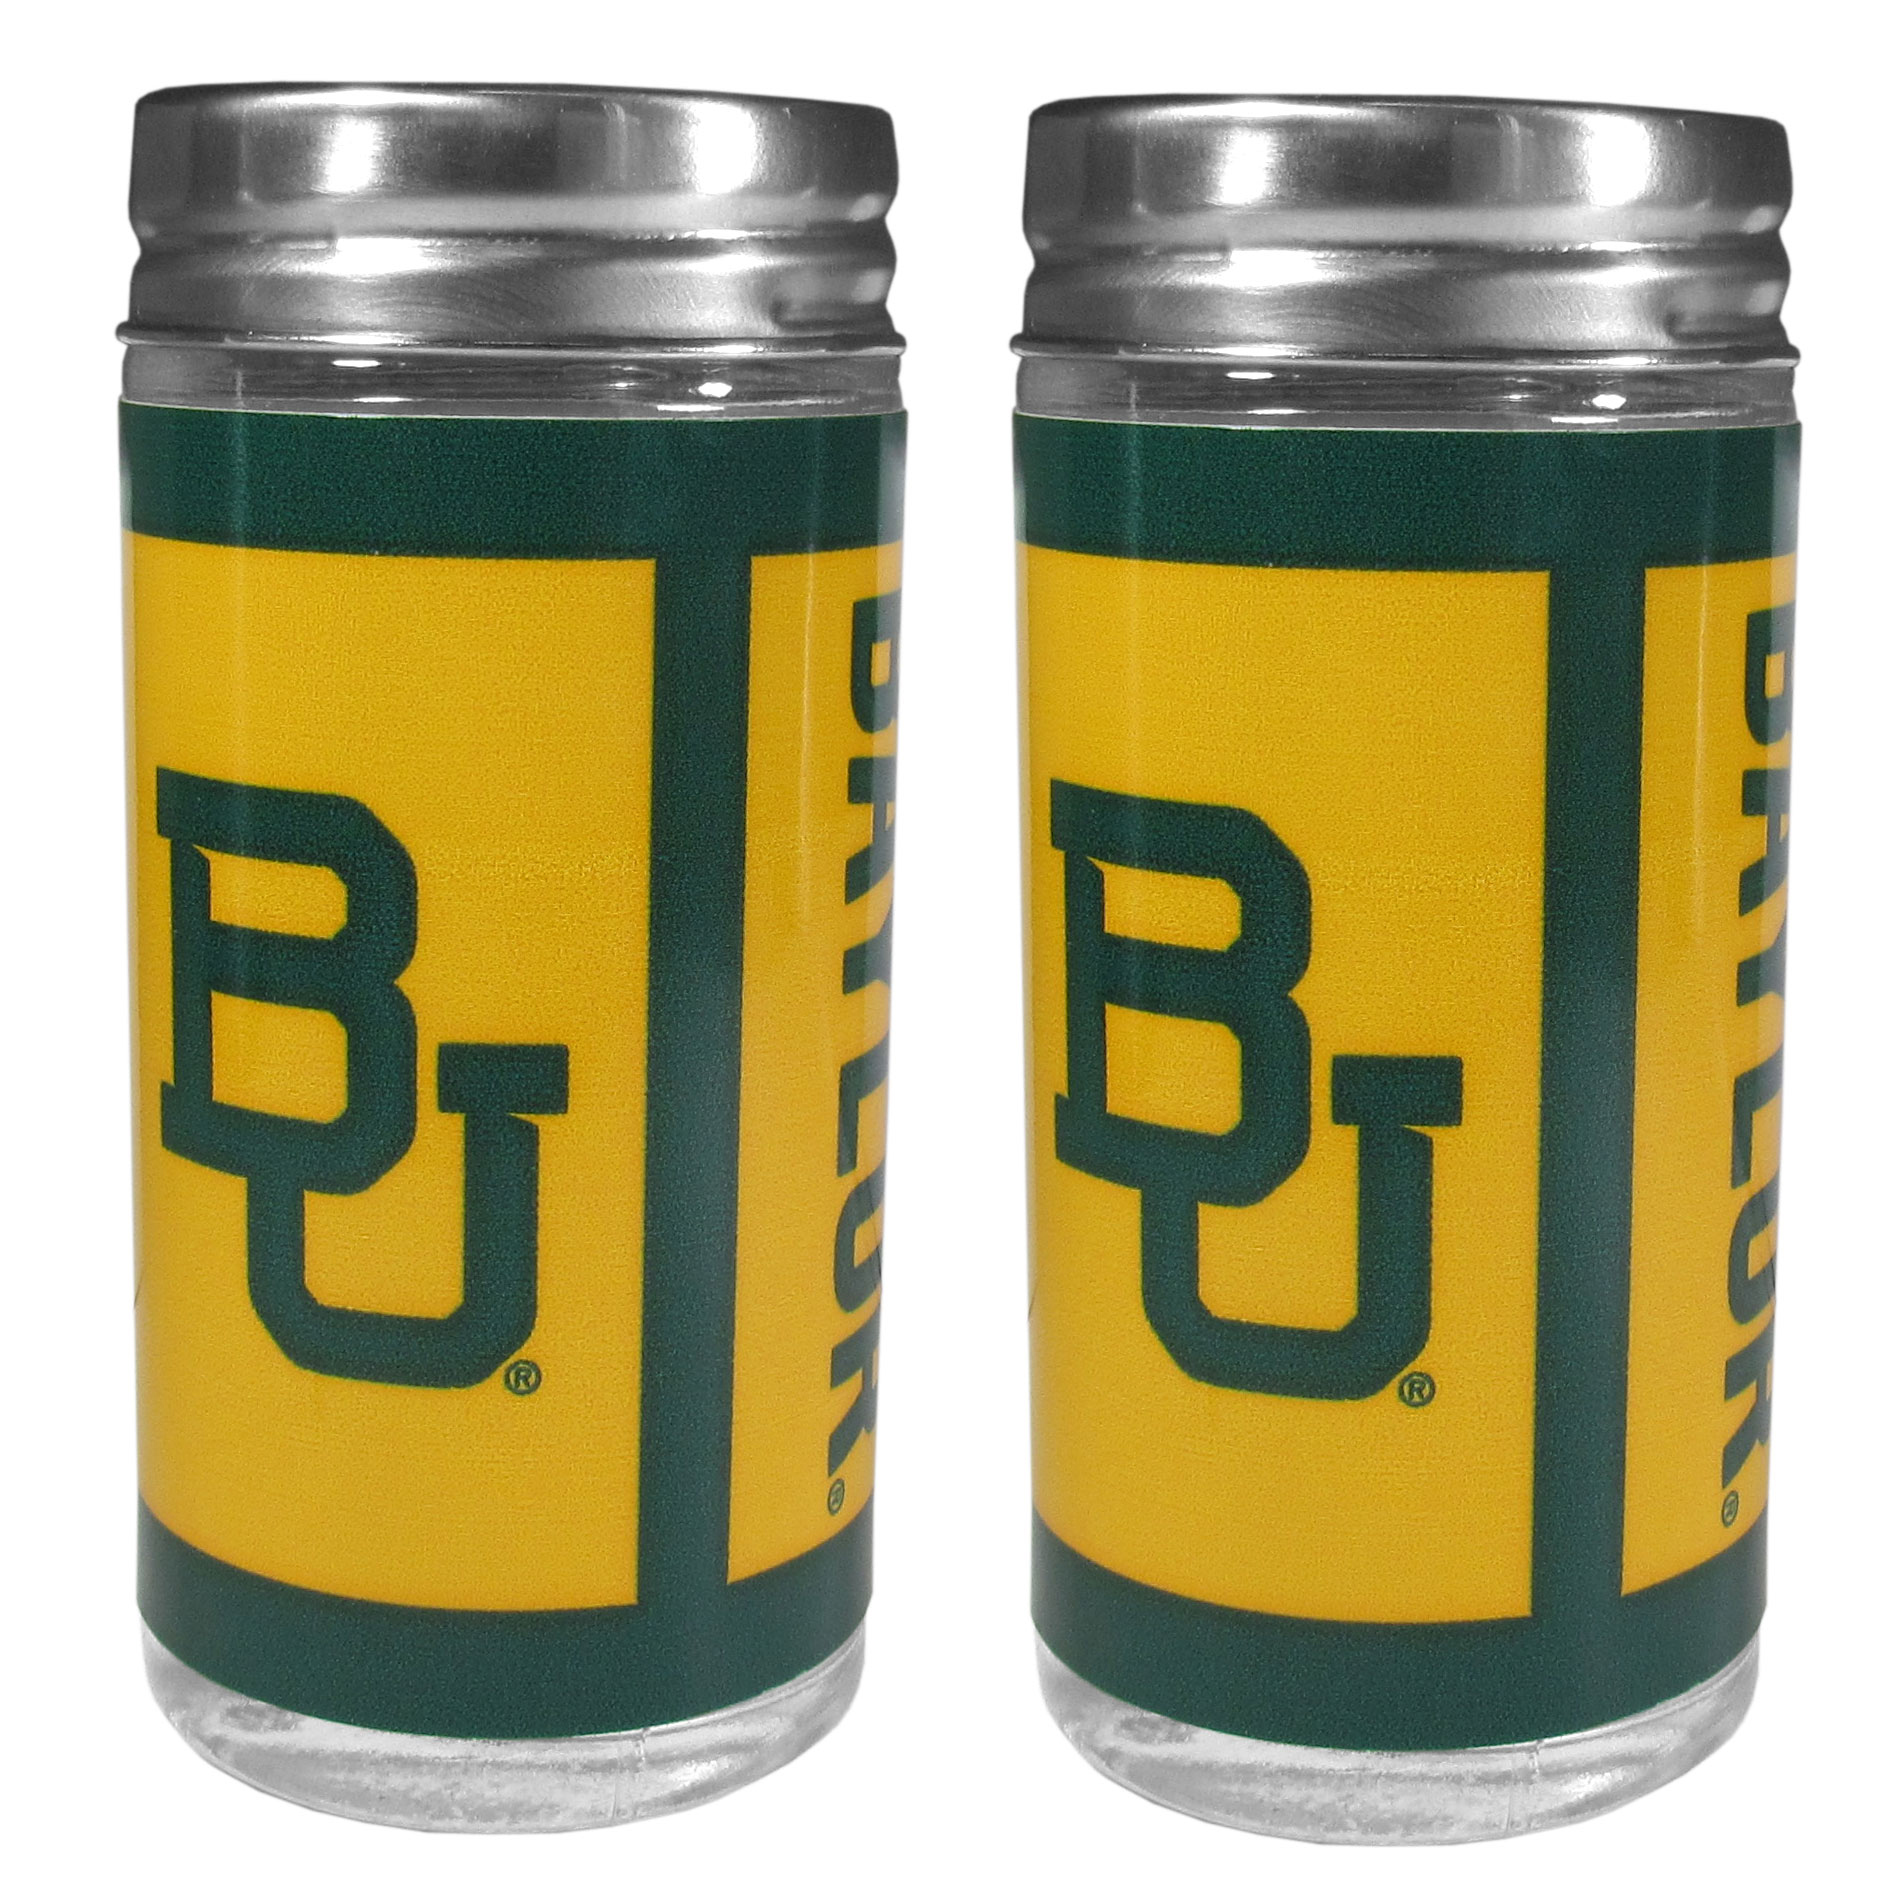 Baylor Bears Tailgater Salt and Pepper Shakers - No tailgate party is complete without your Baylor Bears salt & pepper shakers featuring bright team graphics. The glass shakers are 3.75 inches tall and the screw top lids have holes that spell out P and S. These team shakers are a great grill accessory whether you are barbecuing on the patio, picnicing or having a game day party.